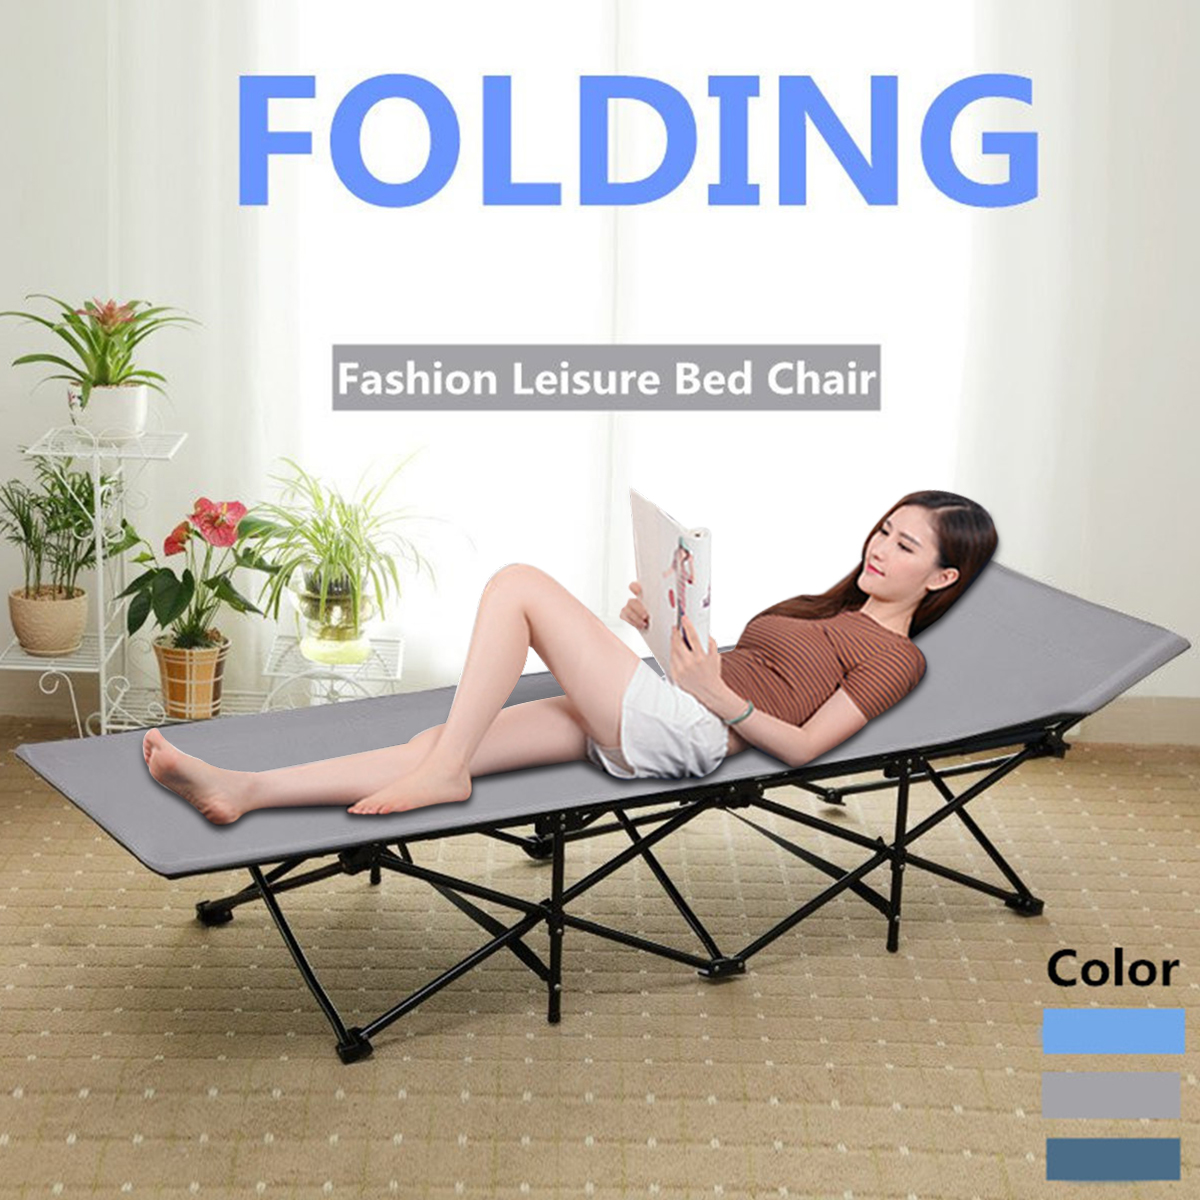 "75"" Folding Garden Lounge Bed Chair Beach Camping Patio Picnic Rest Sun Recliner"